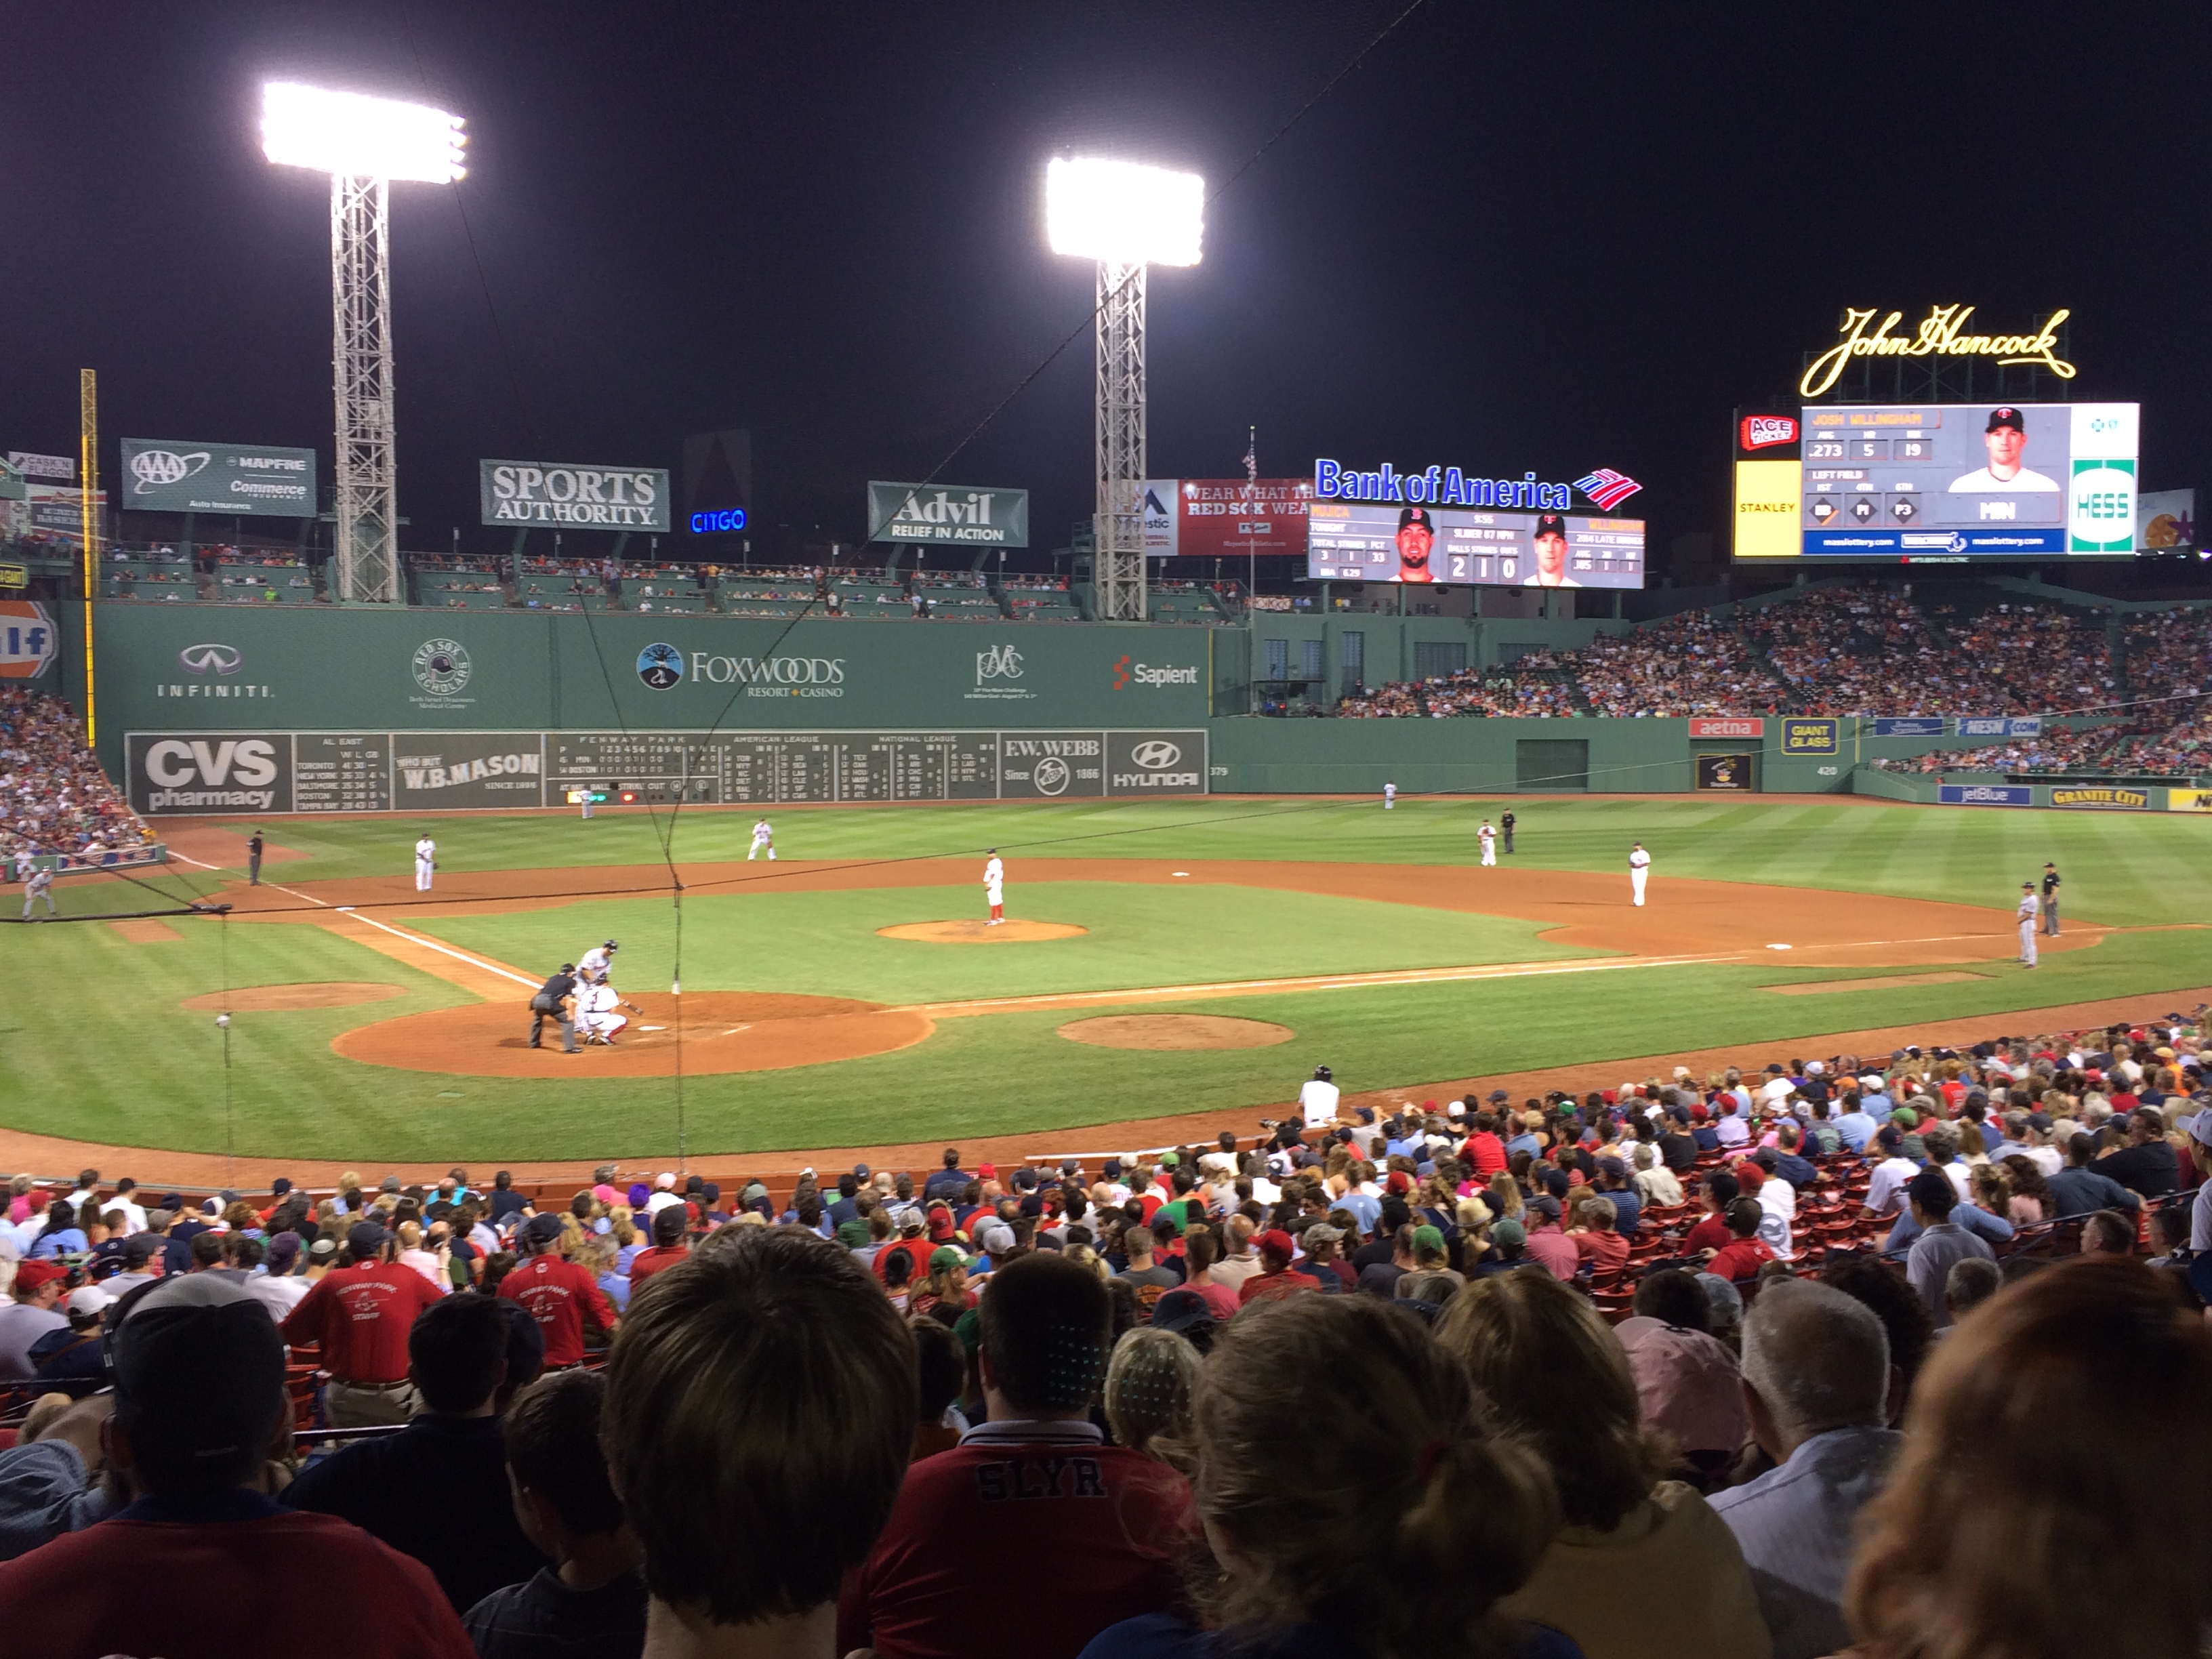 Beaned-Town: Mass. Pols Boo Red Sox Crony Capitalism But Don't Do Anything About It